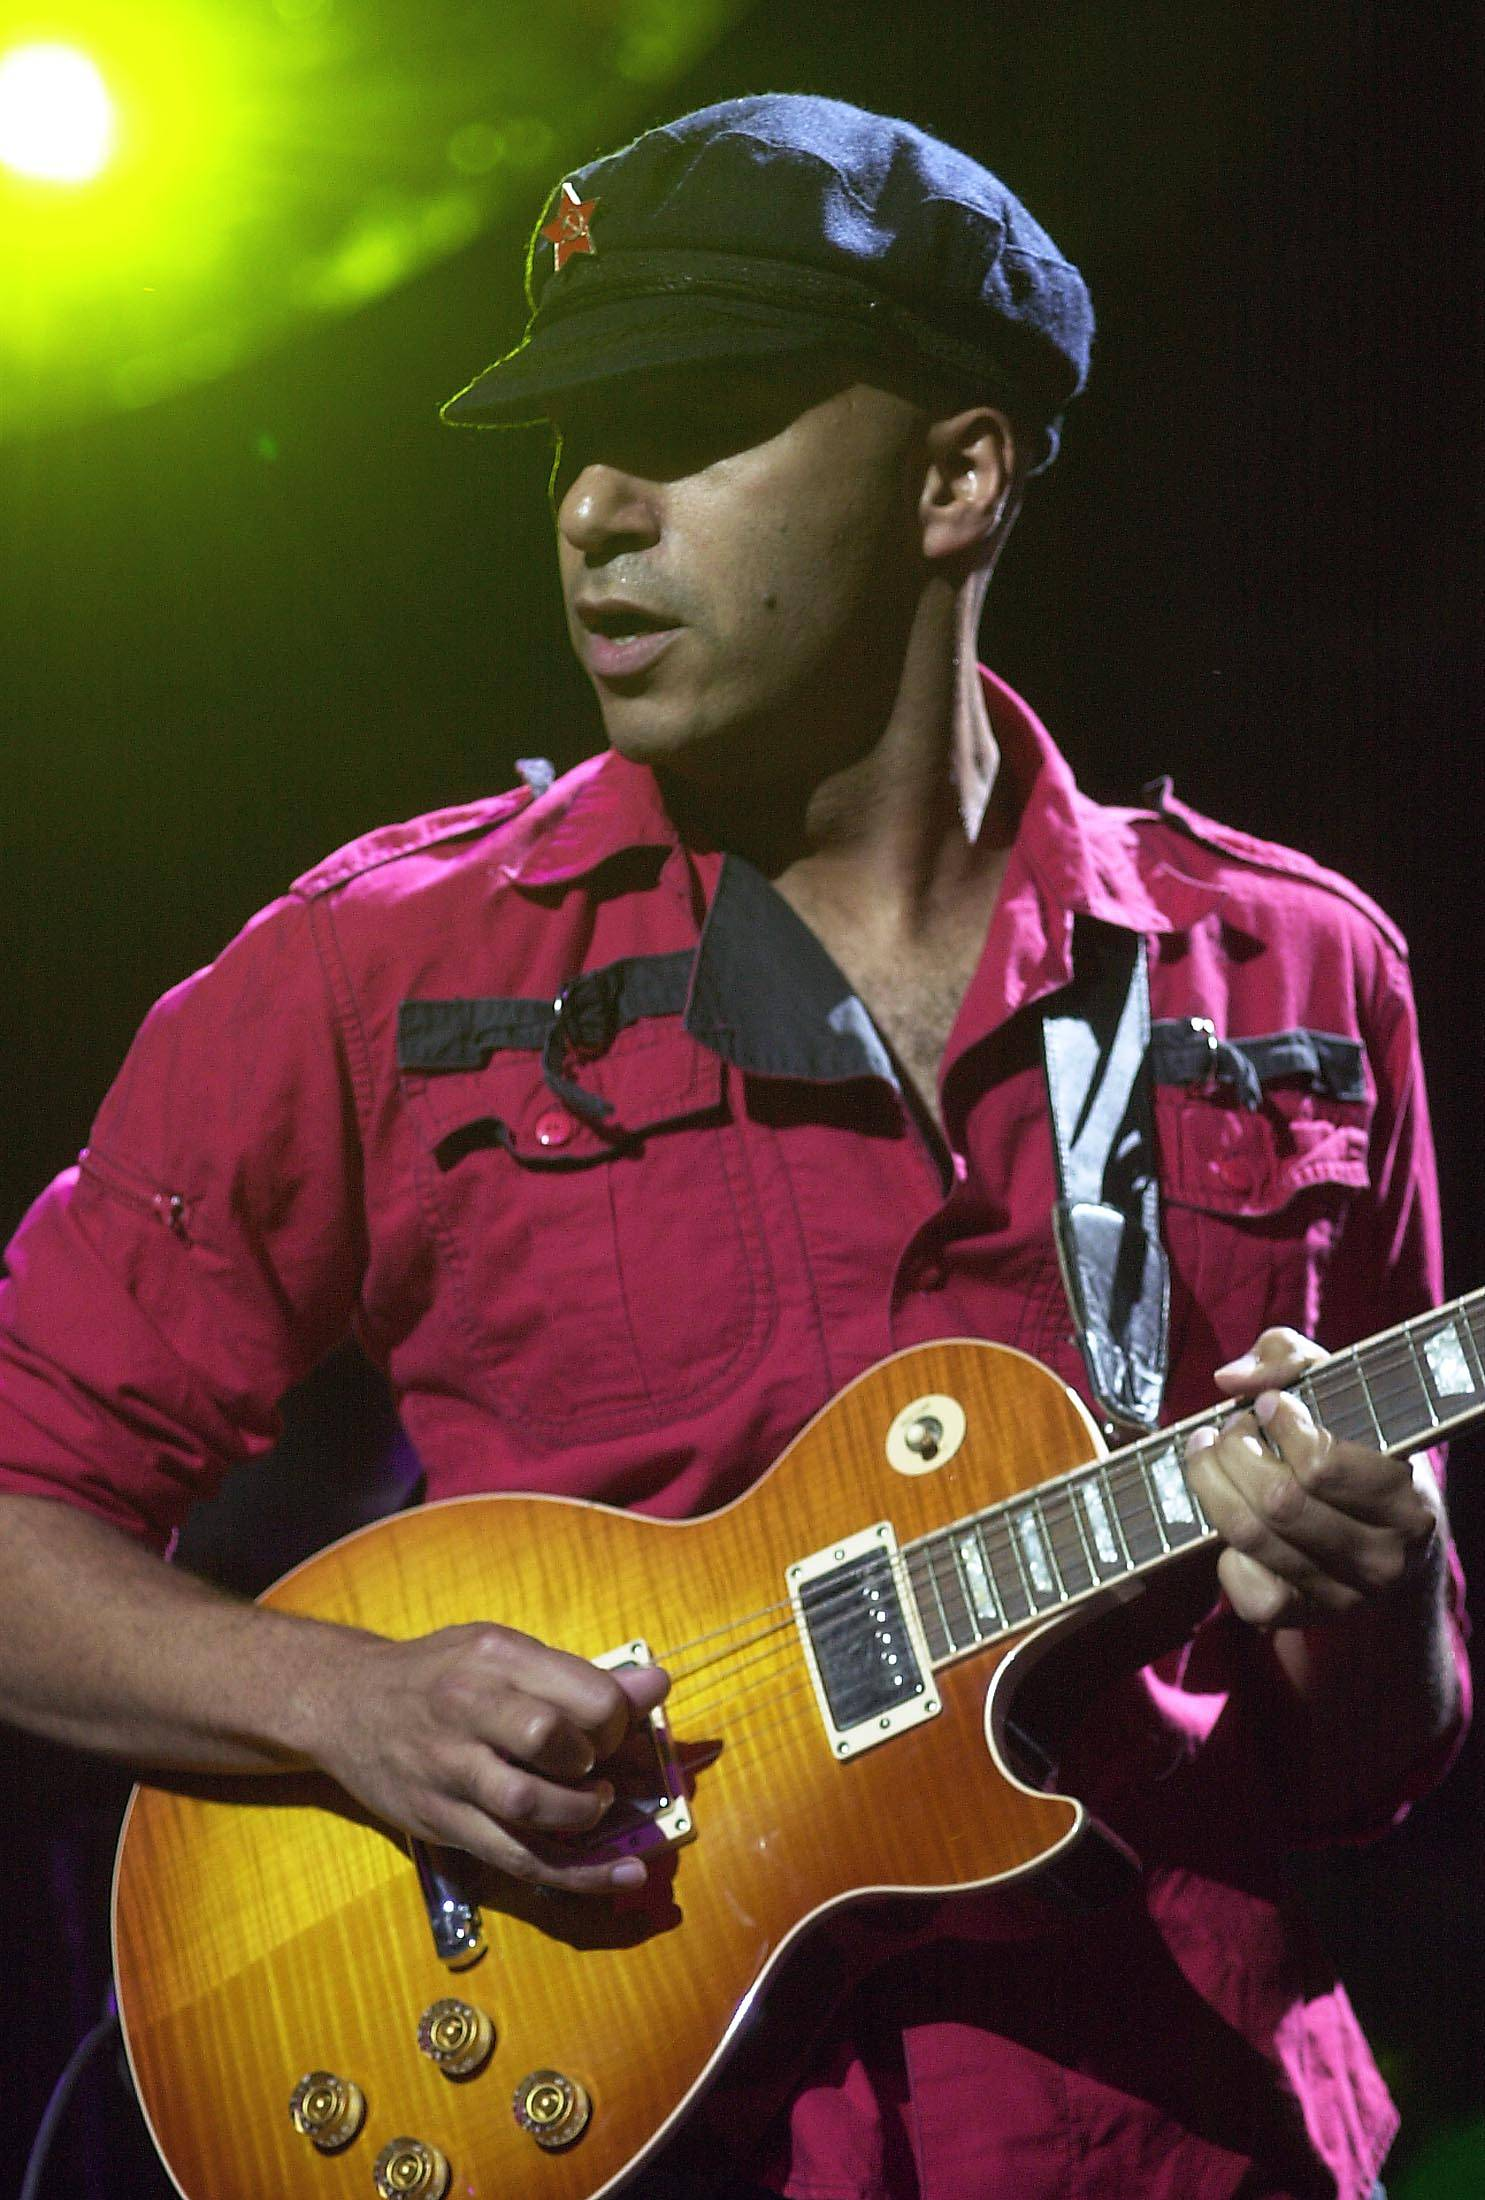 Guitarist Tom Morello, best known for his work with Rage Against the Machine, is from Libertyville.